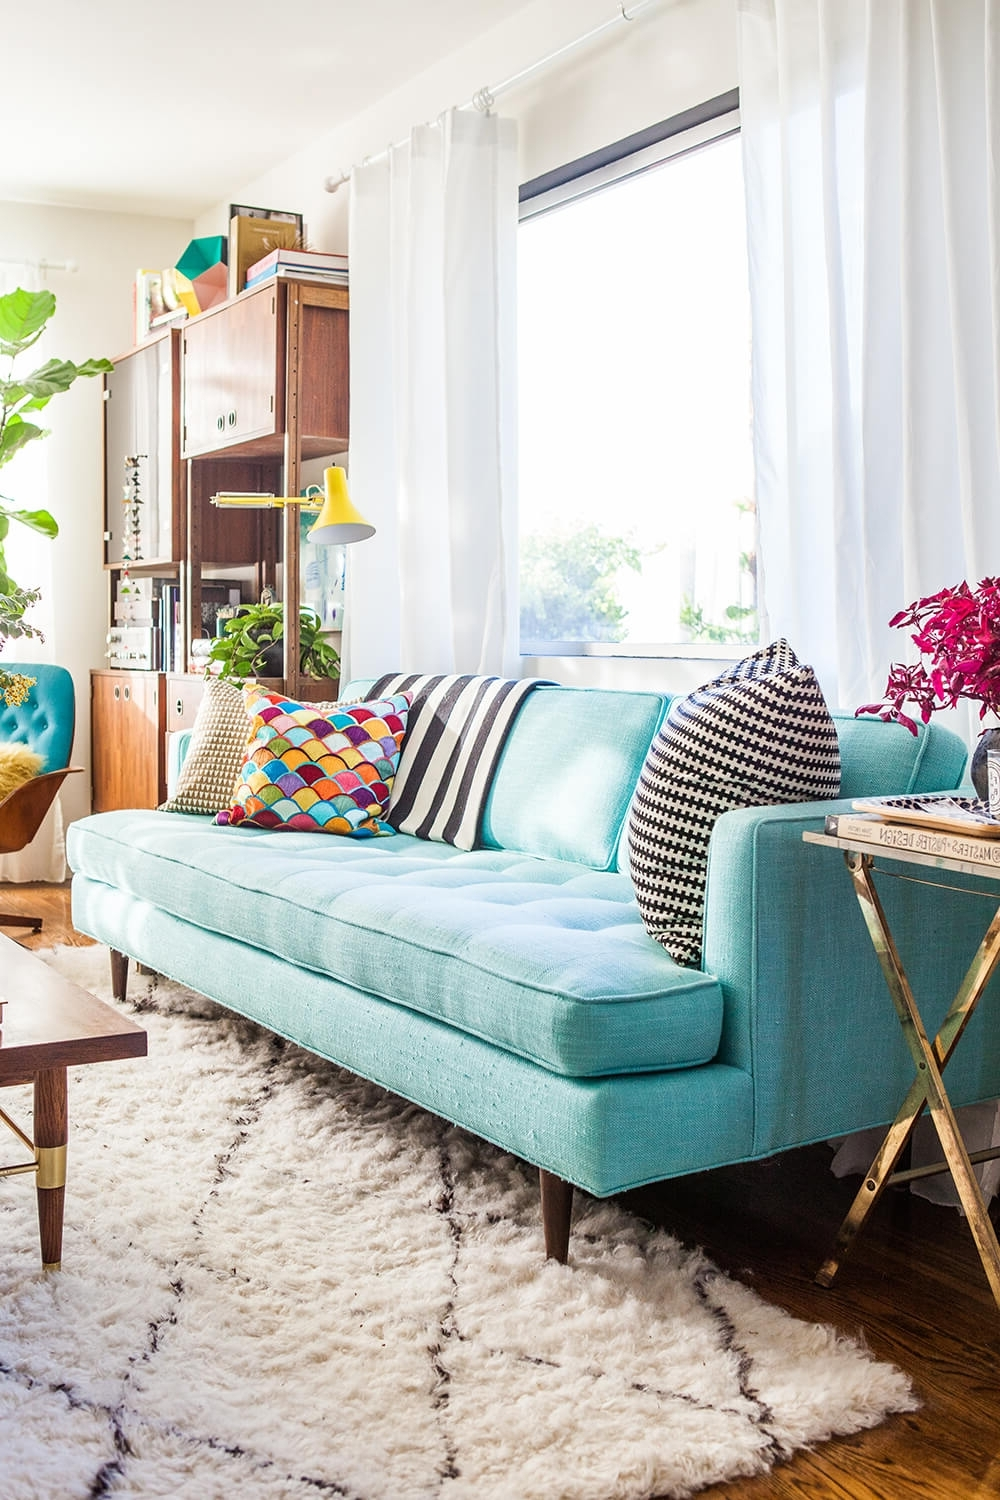 Best And Newest Sectional Sofas Under 1000 Throughout 84 Affordable Amazing Sofas Under $1000 – Emily Henderson (View 3 of 15)